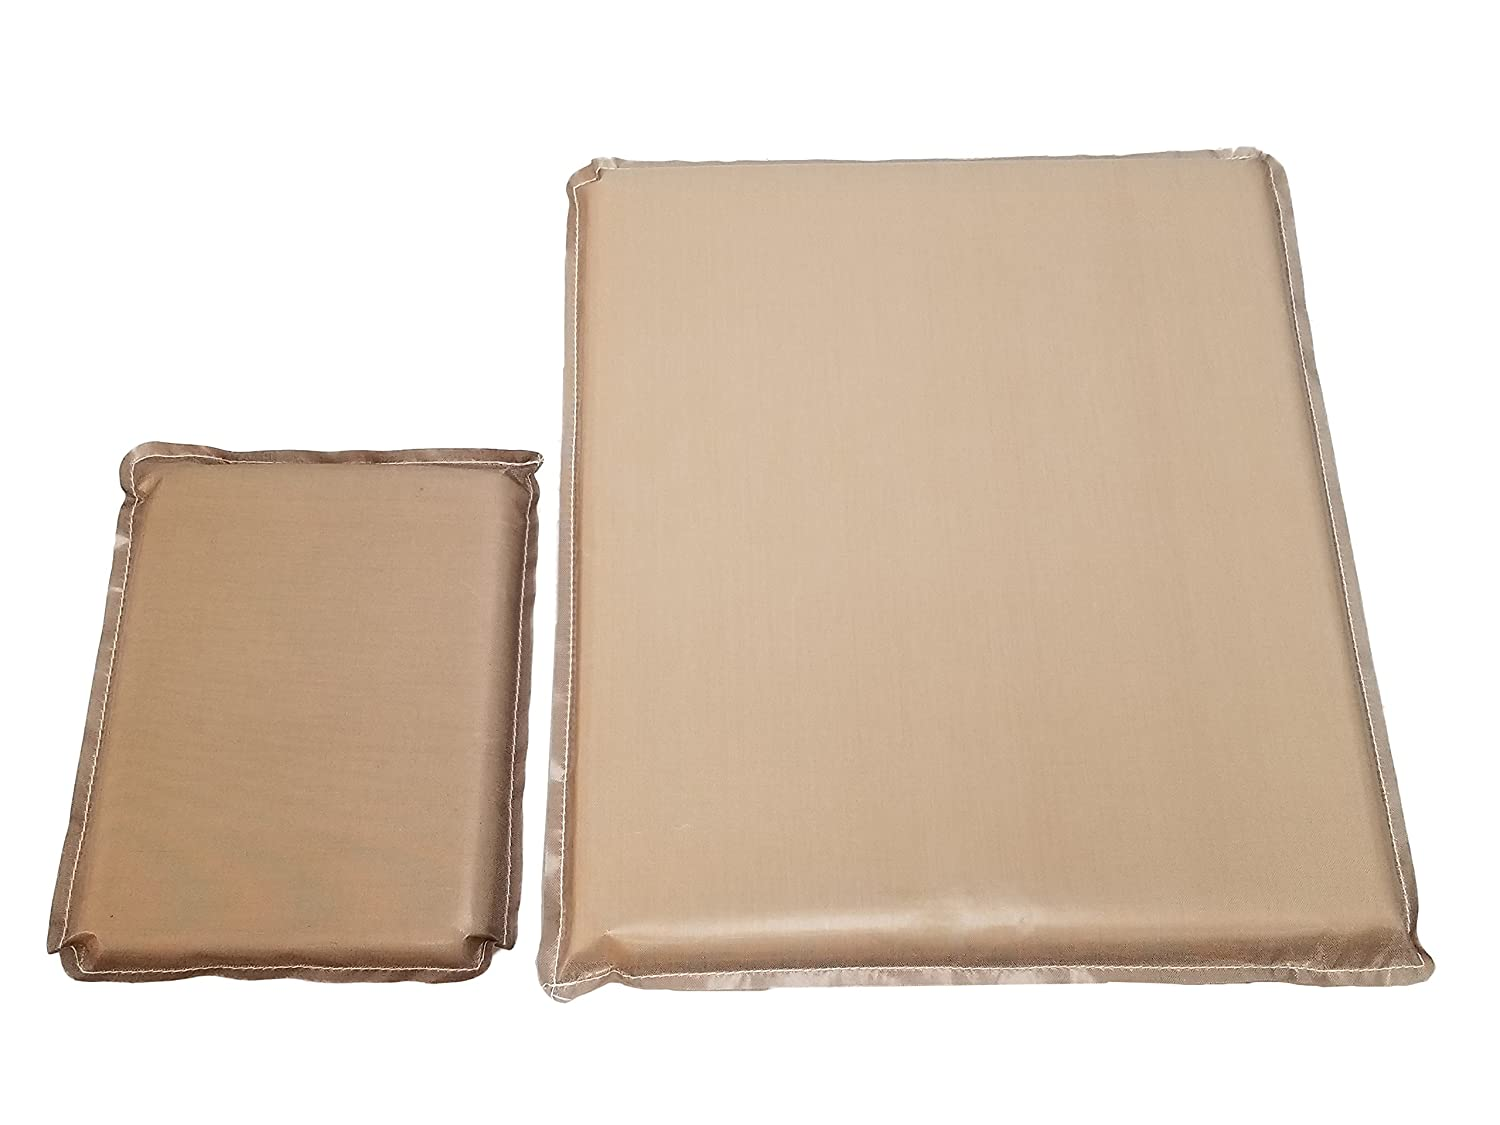 Heat Press Pillow Bundle (2 Pack) 6 x 8, 12 x 14 by Essentialware with 3/4 Thick Memory Foam TPPAK681214